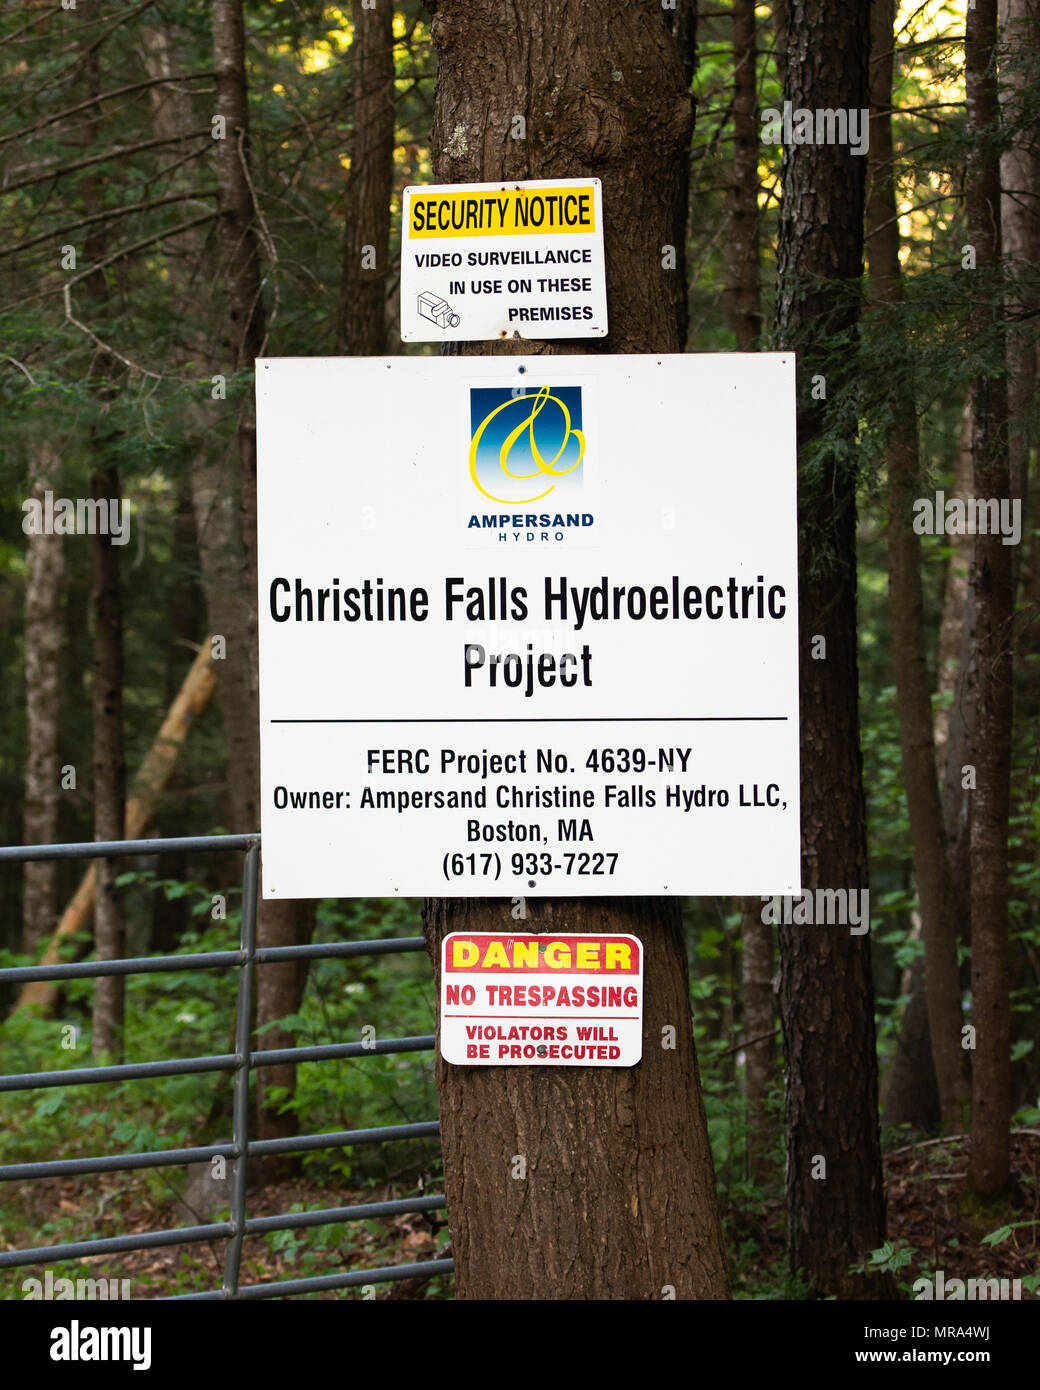 Sign at the entrance to the Christing Falls Hydroelectric Project on the Sacandaga River in the Adirondack Mountains, NY USA - Stock Image